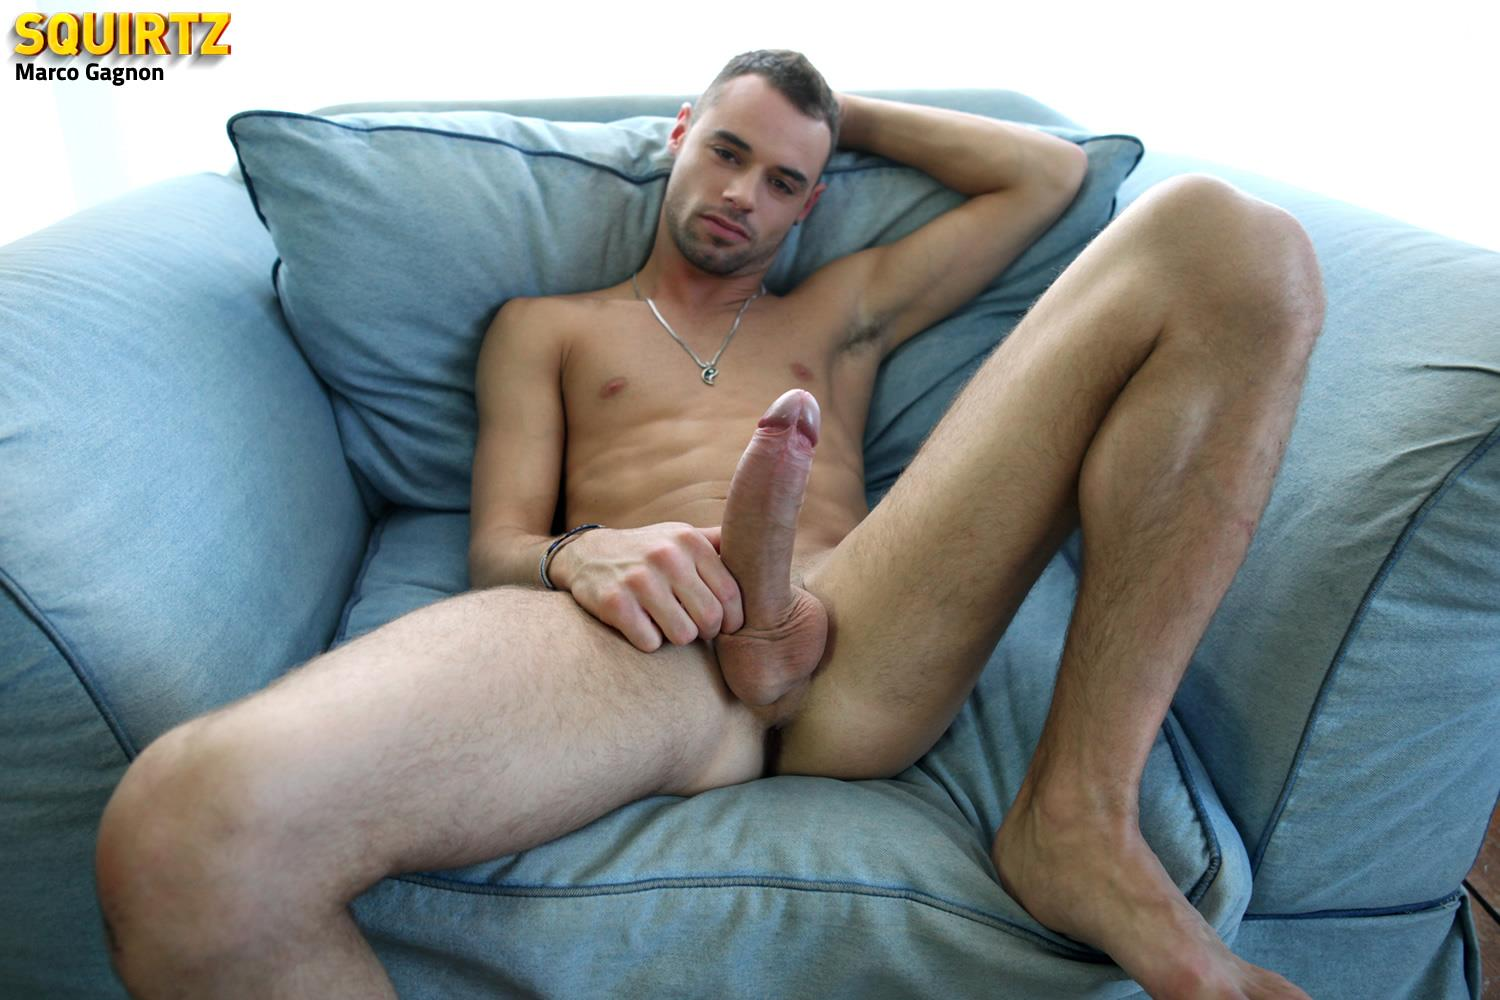 Squirtz Marco Gagnon Twink With A Massive Uncut Cock Jerk Off Amateur Gay Porn 18 Young and Hung Marco Gagnon Stokes His Massive Uncut Cock